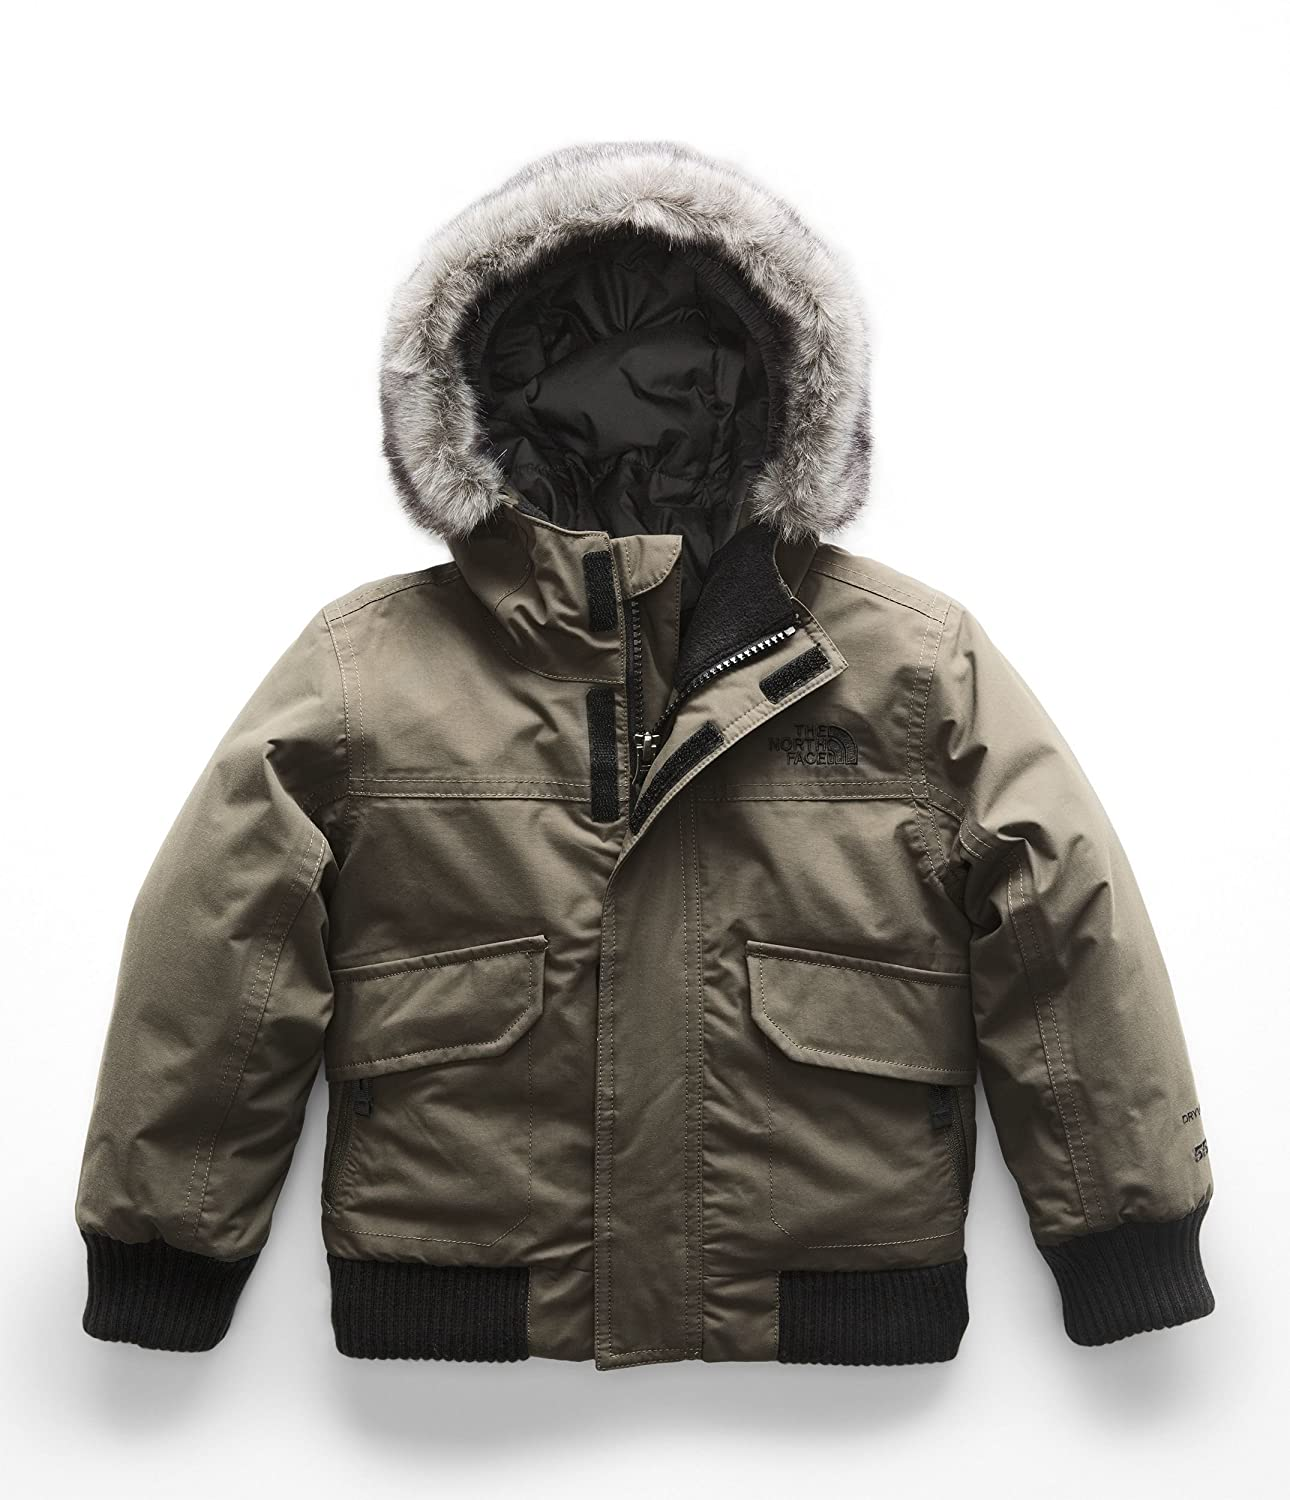 6eac8450ce26 Amazon.com  The North Face Toddler Boy s Gotham Down Jacket  Clothing